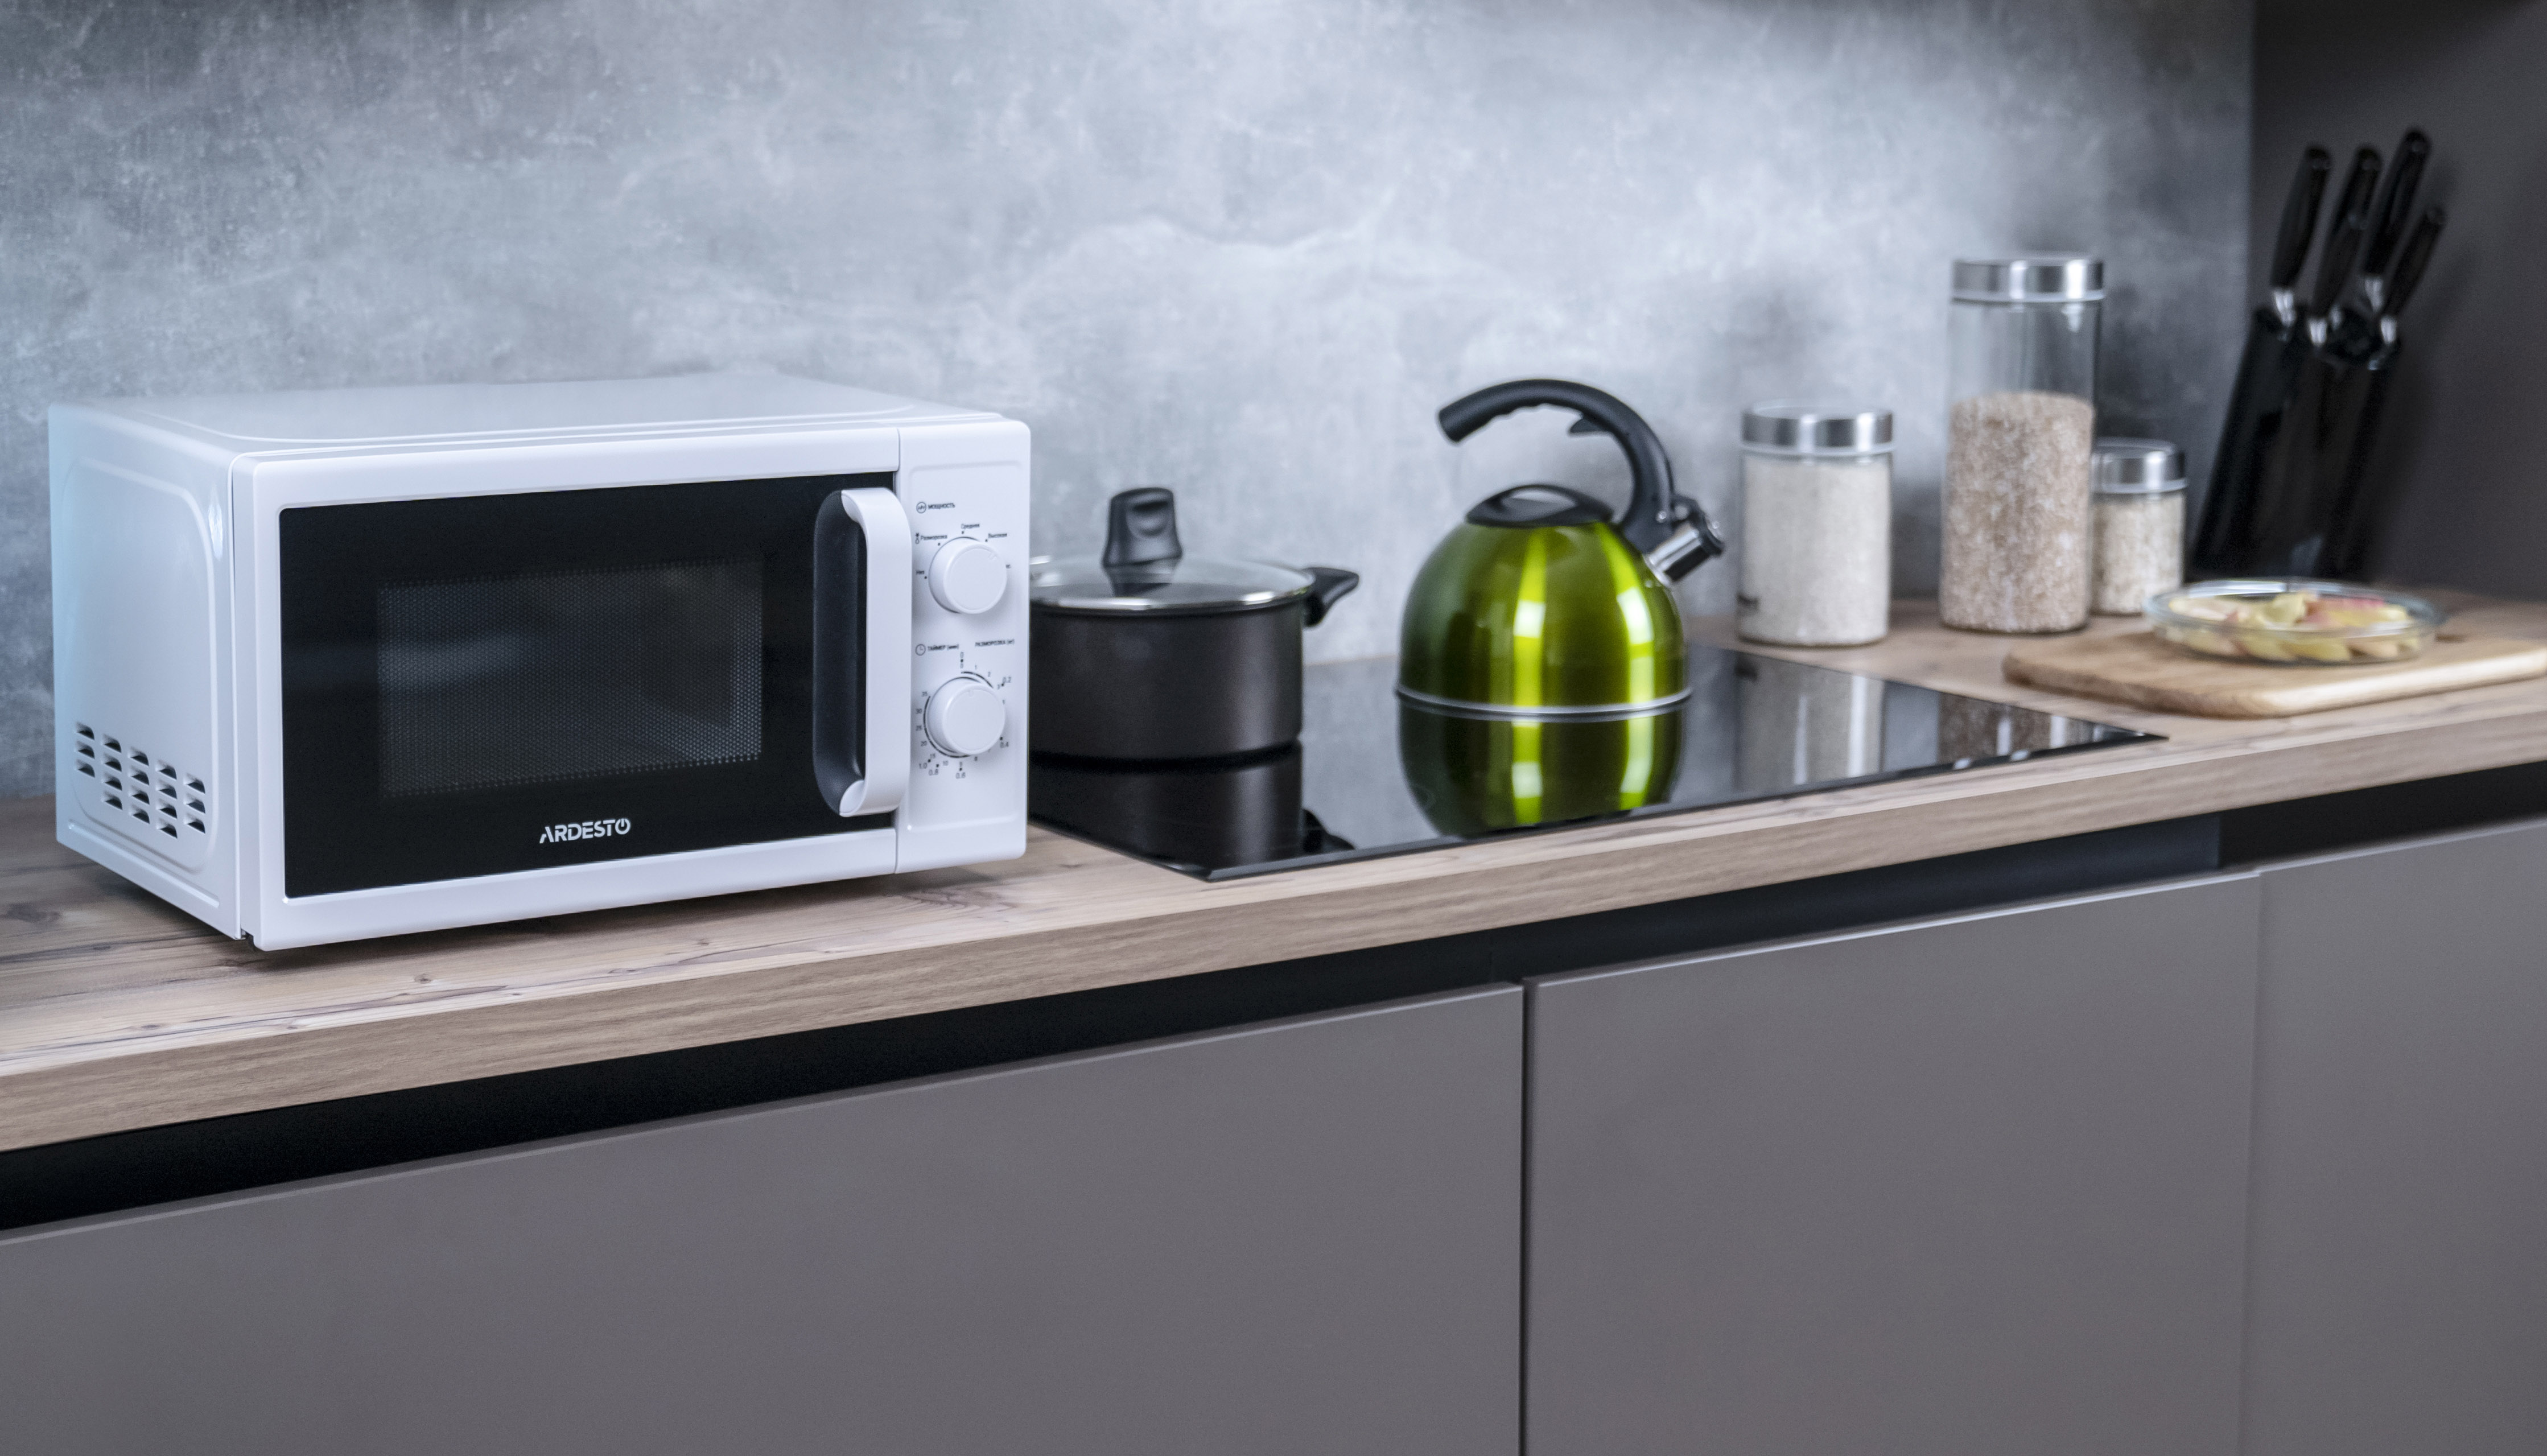 Ardesto presents new microwave ovens